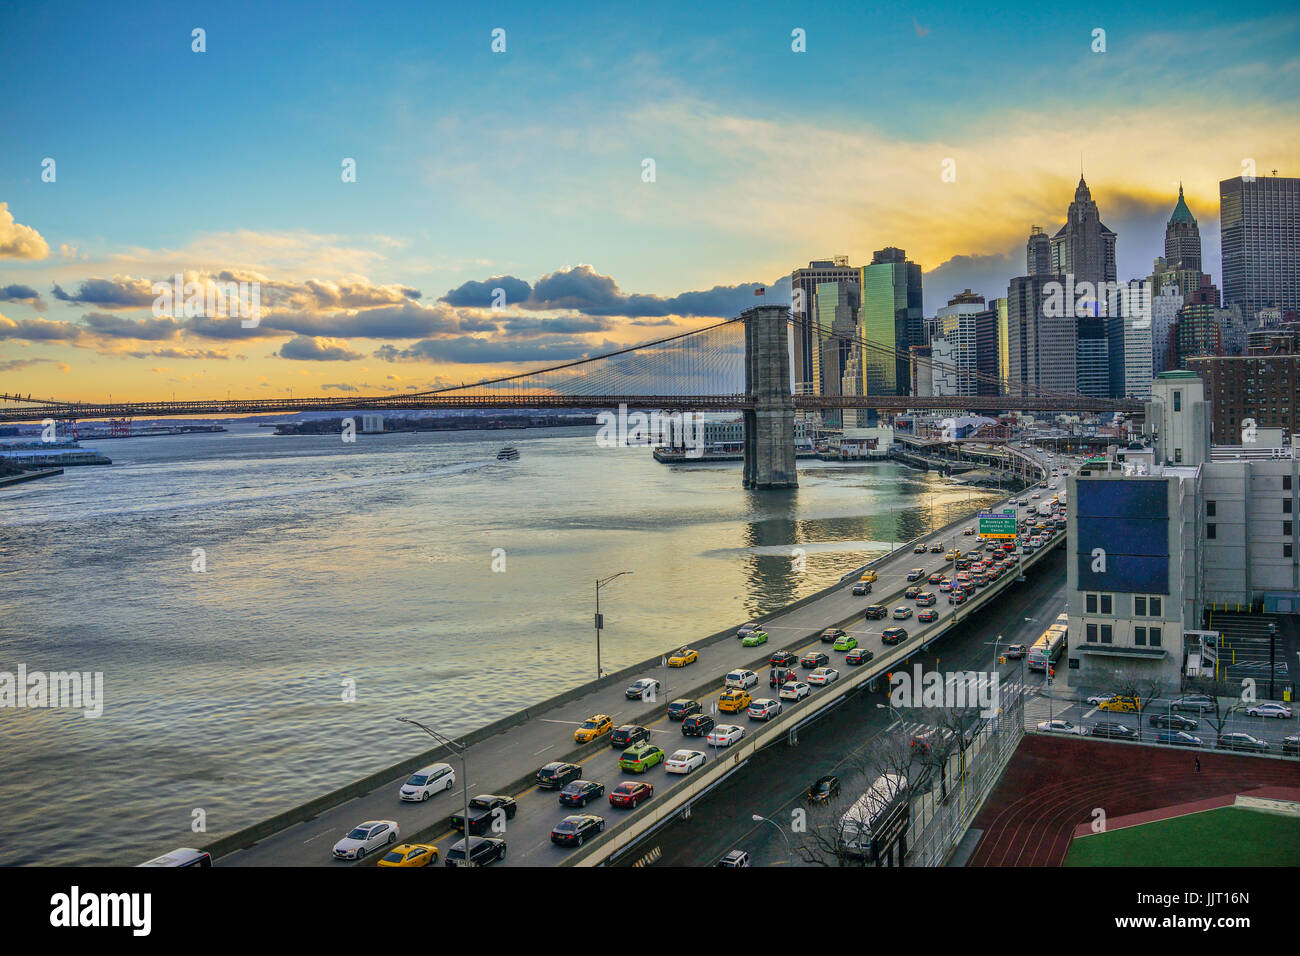 Pont de Manhattan et NEW YORK Skyline pendant le coucher du soleil avec circulation Photo Stock